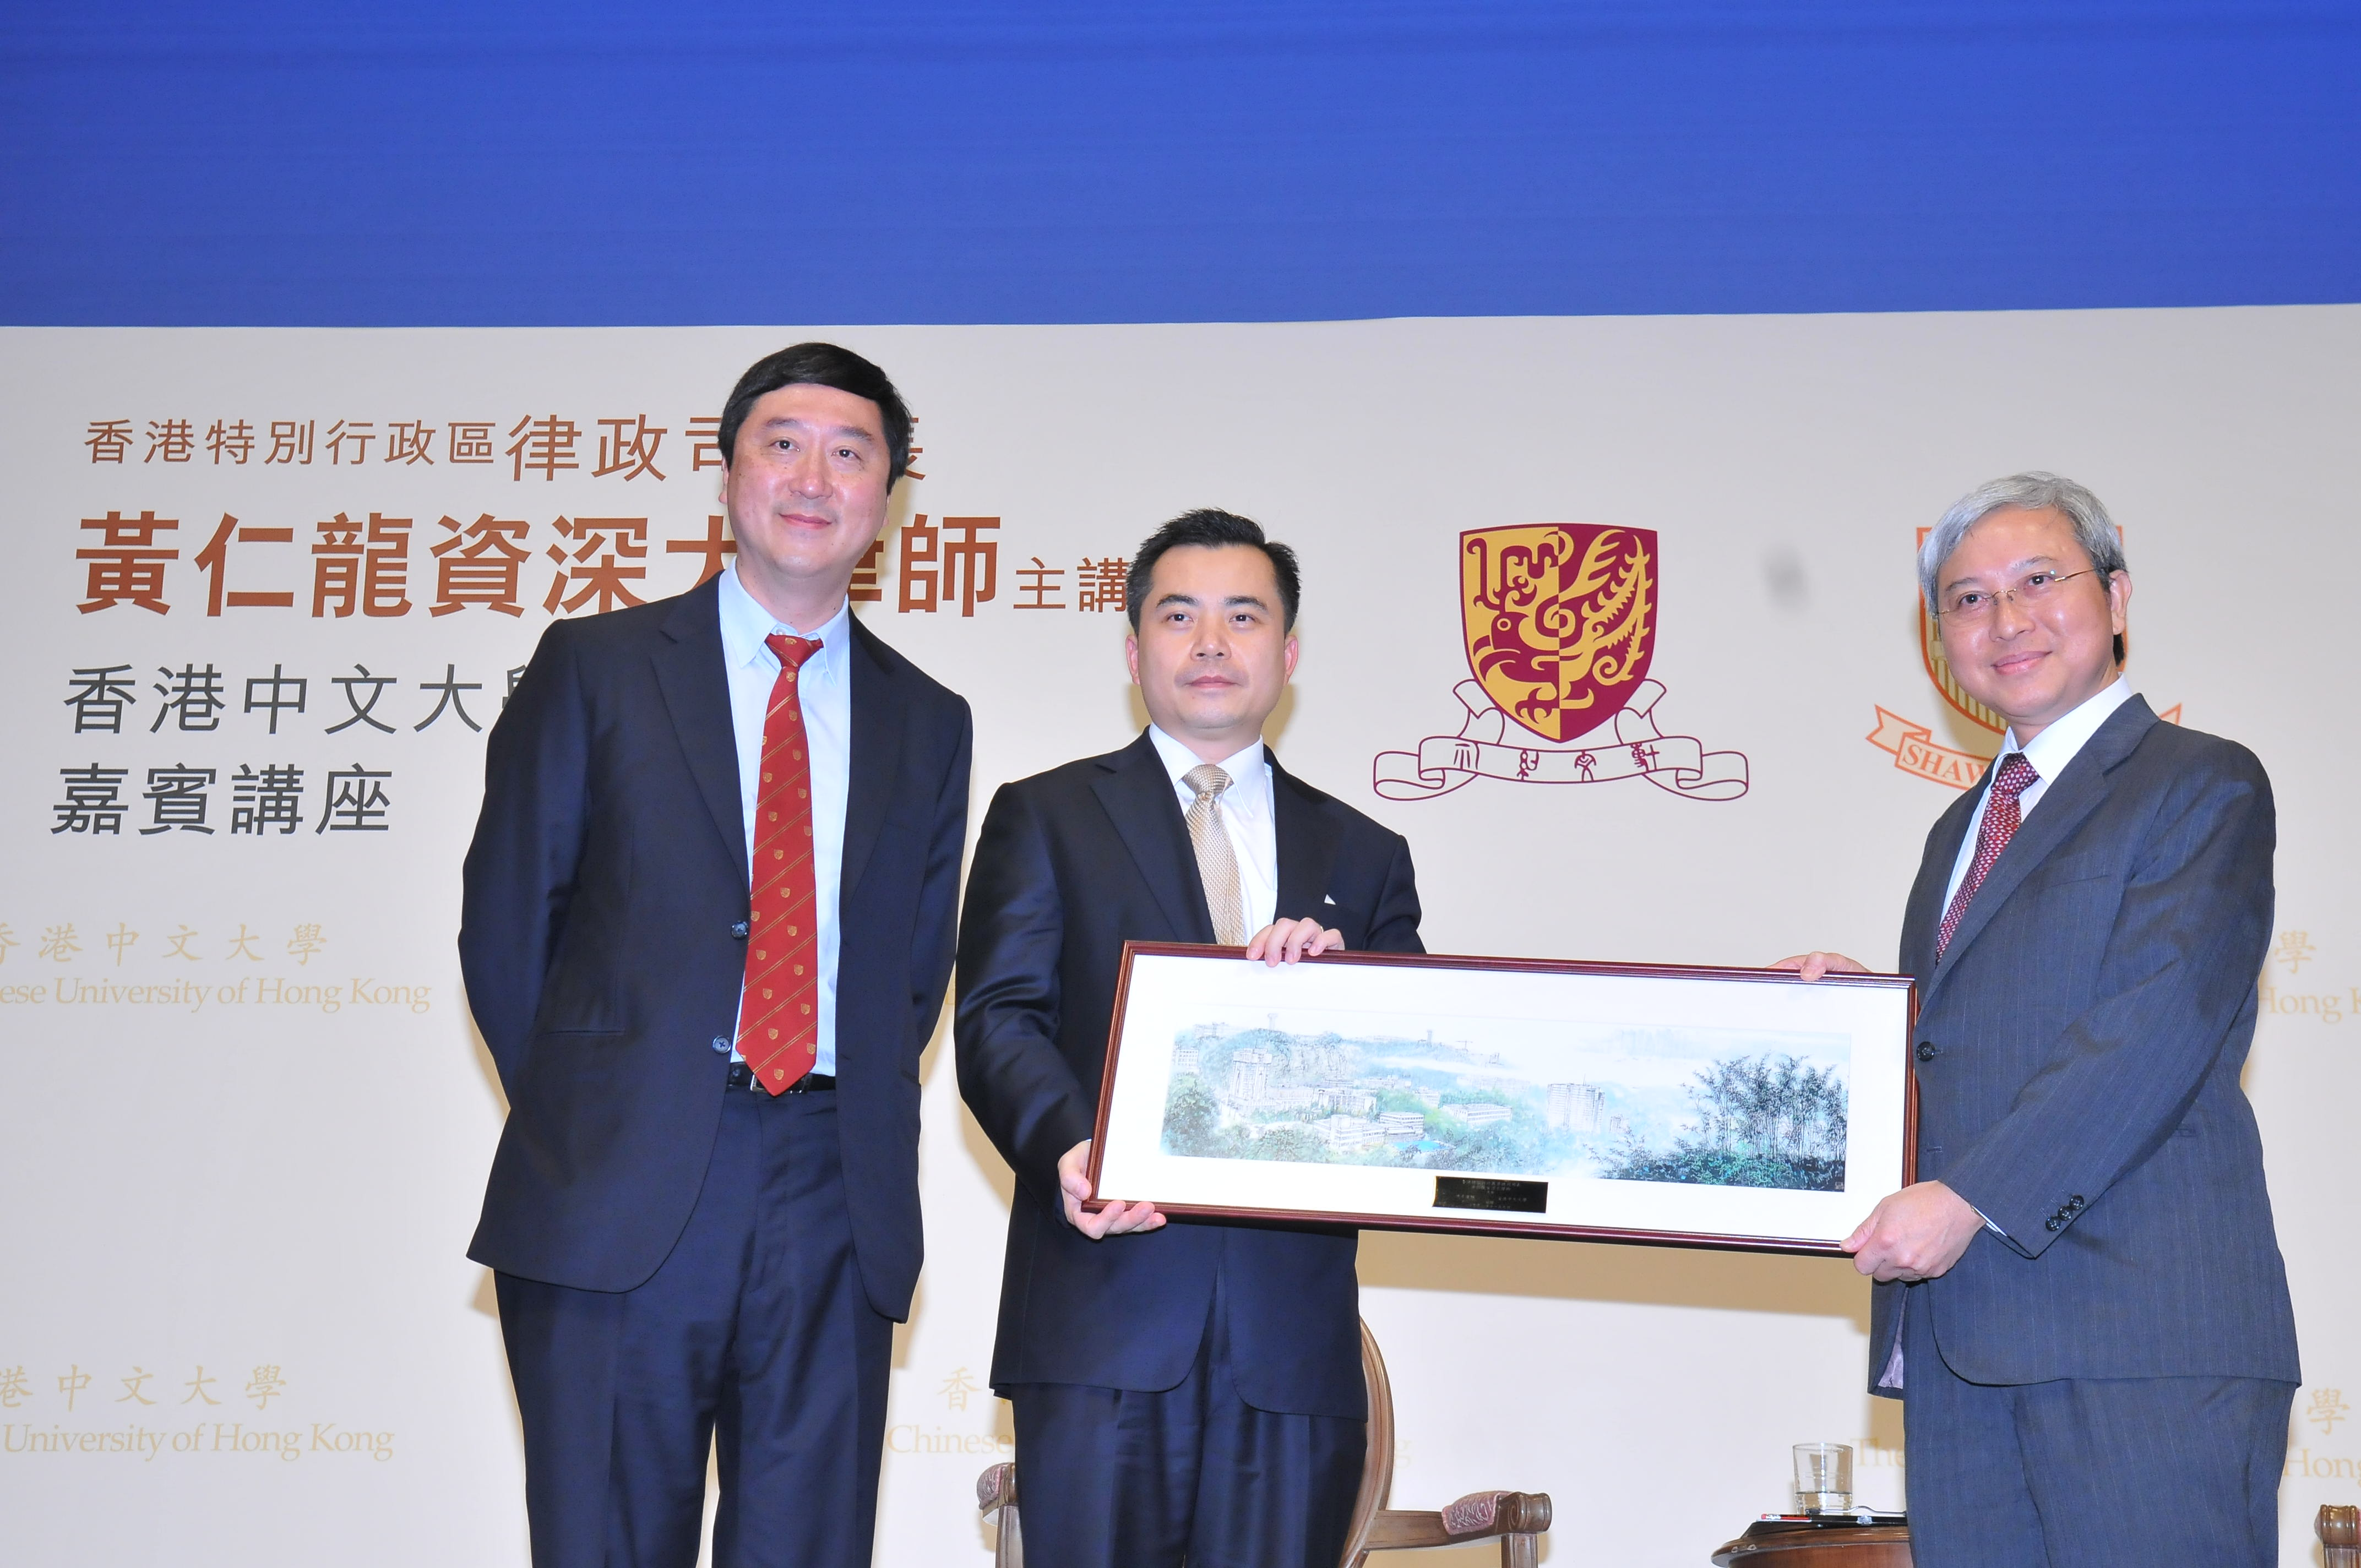 Prof. Liu Pak Wai, Acting Vice-Chancellor of CUHK (right) and Prof. Joseph Sung, Head of Shaw College, CUHK (left) present a souvenir to the Honourable Wong Yan Lung, SC .